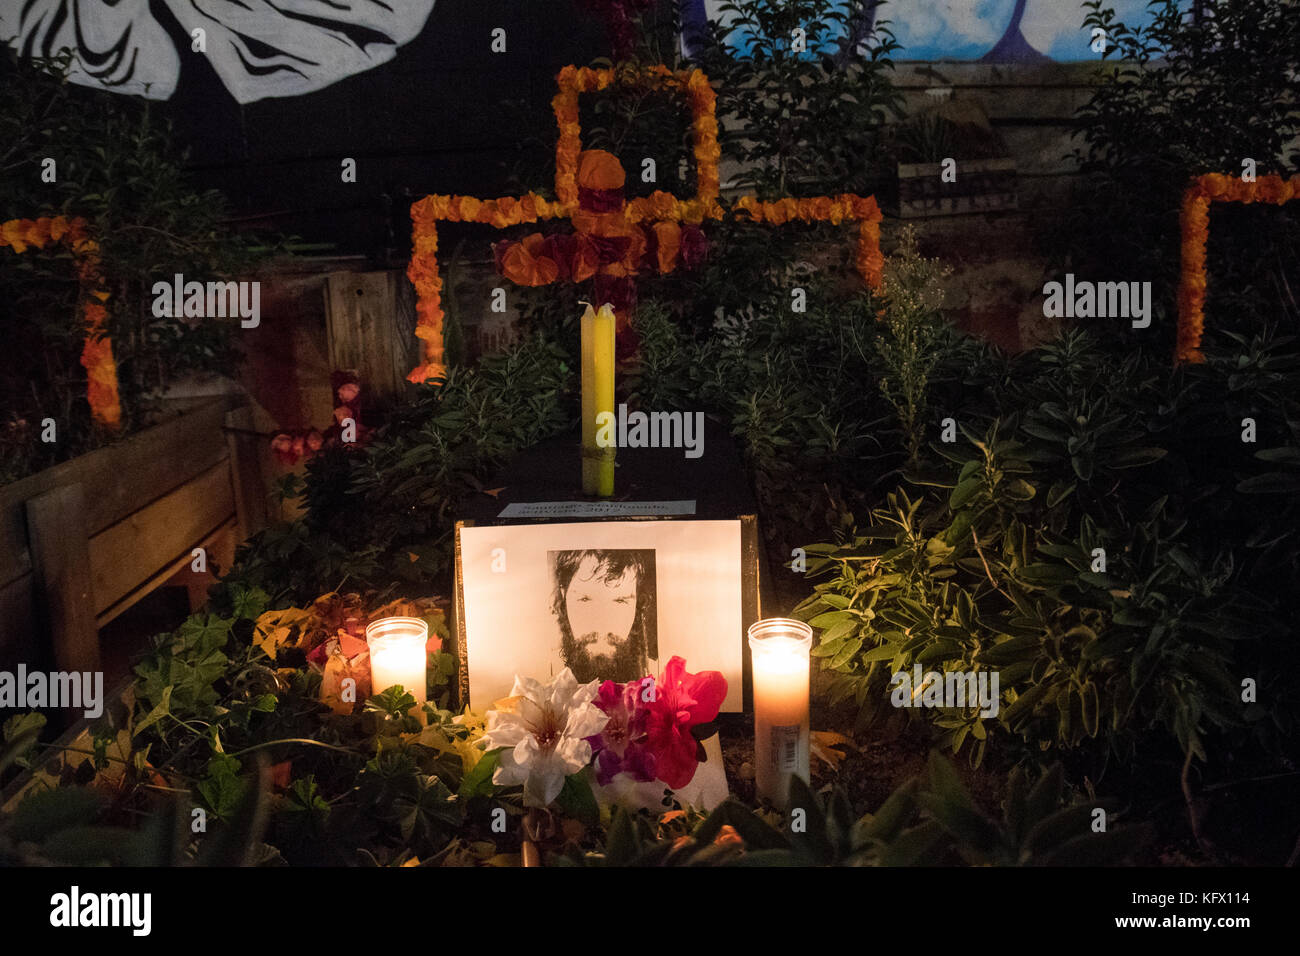 Madrid, Spain. 1st Nov, 2017. Altar dedicated to the activist Santiago Maldonado made on a plot with sage plants - Stock Image